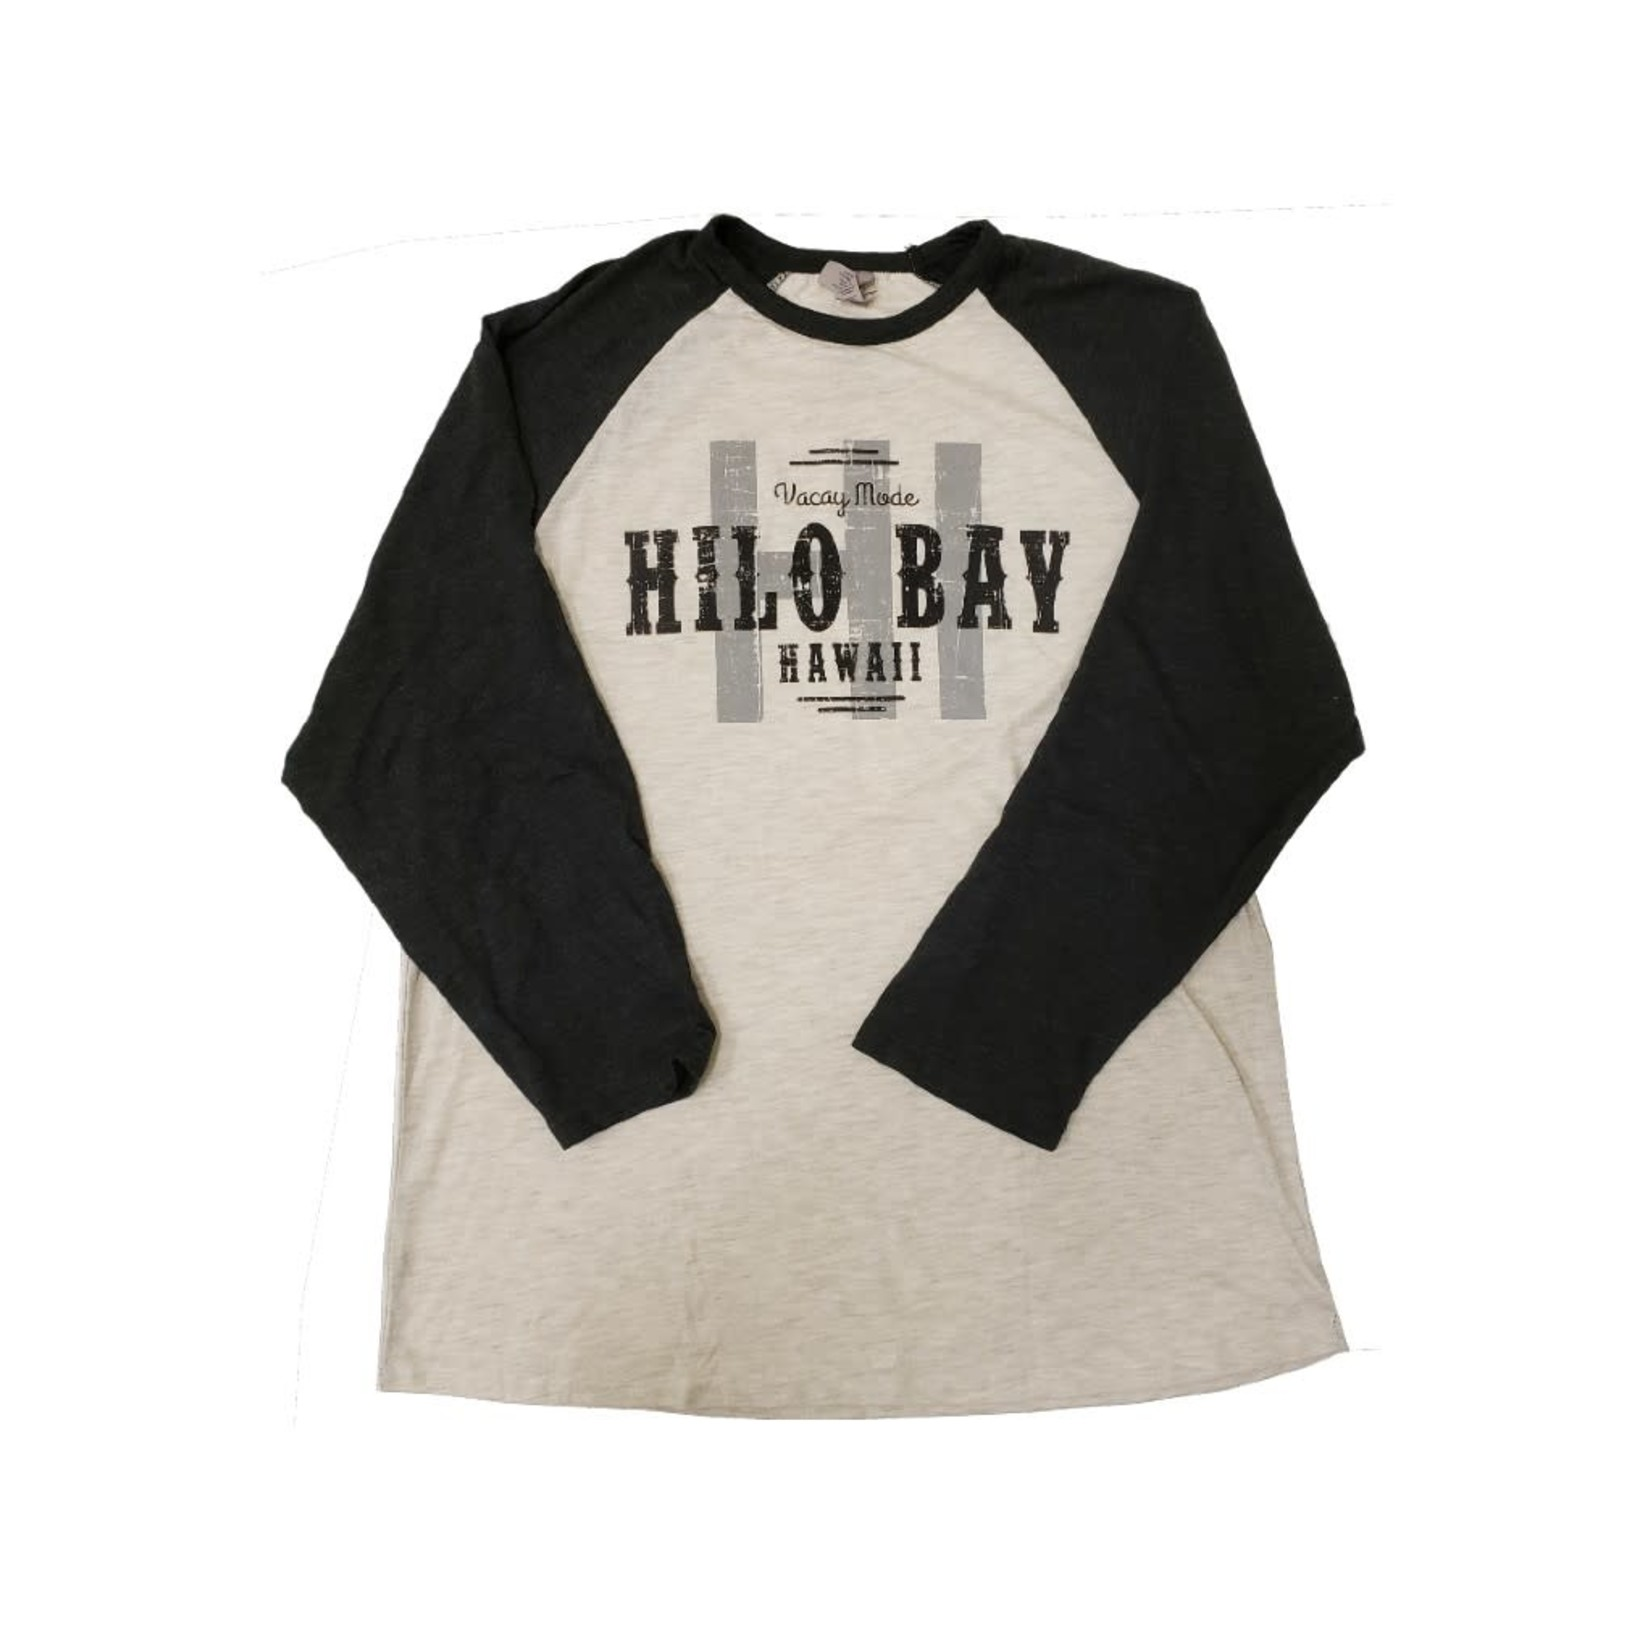 Lone Rock Clothing Pointed Arch Collegiate Longsleeve